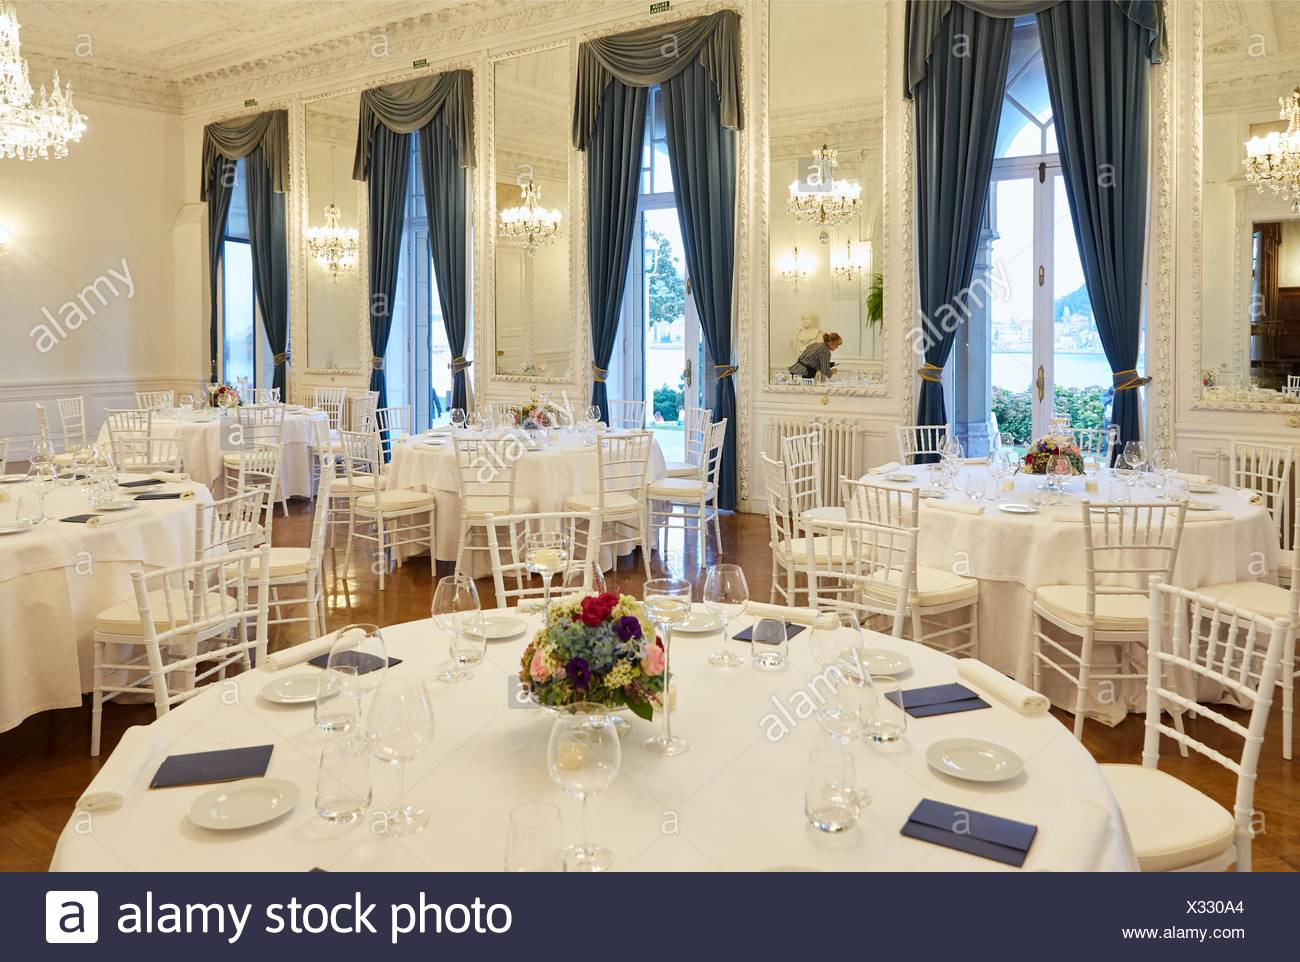 Preparation of tables, restaurant, Event at the Miramar Palace, Donostia, San Sebastian, Gipuzkoa, Basque Country, Spain - Stock Image